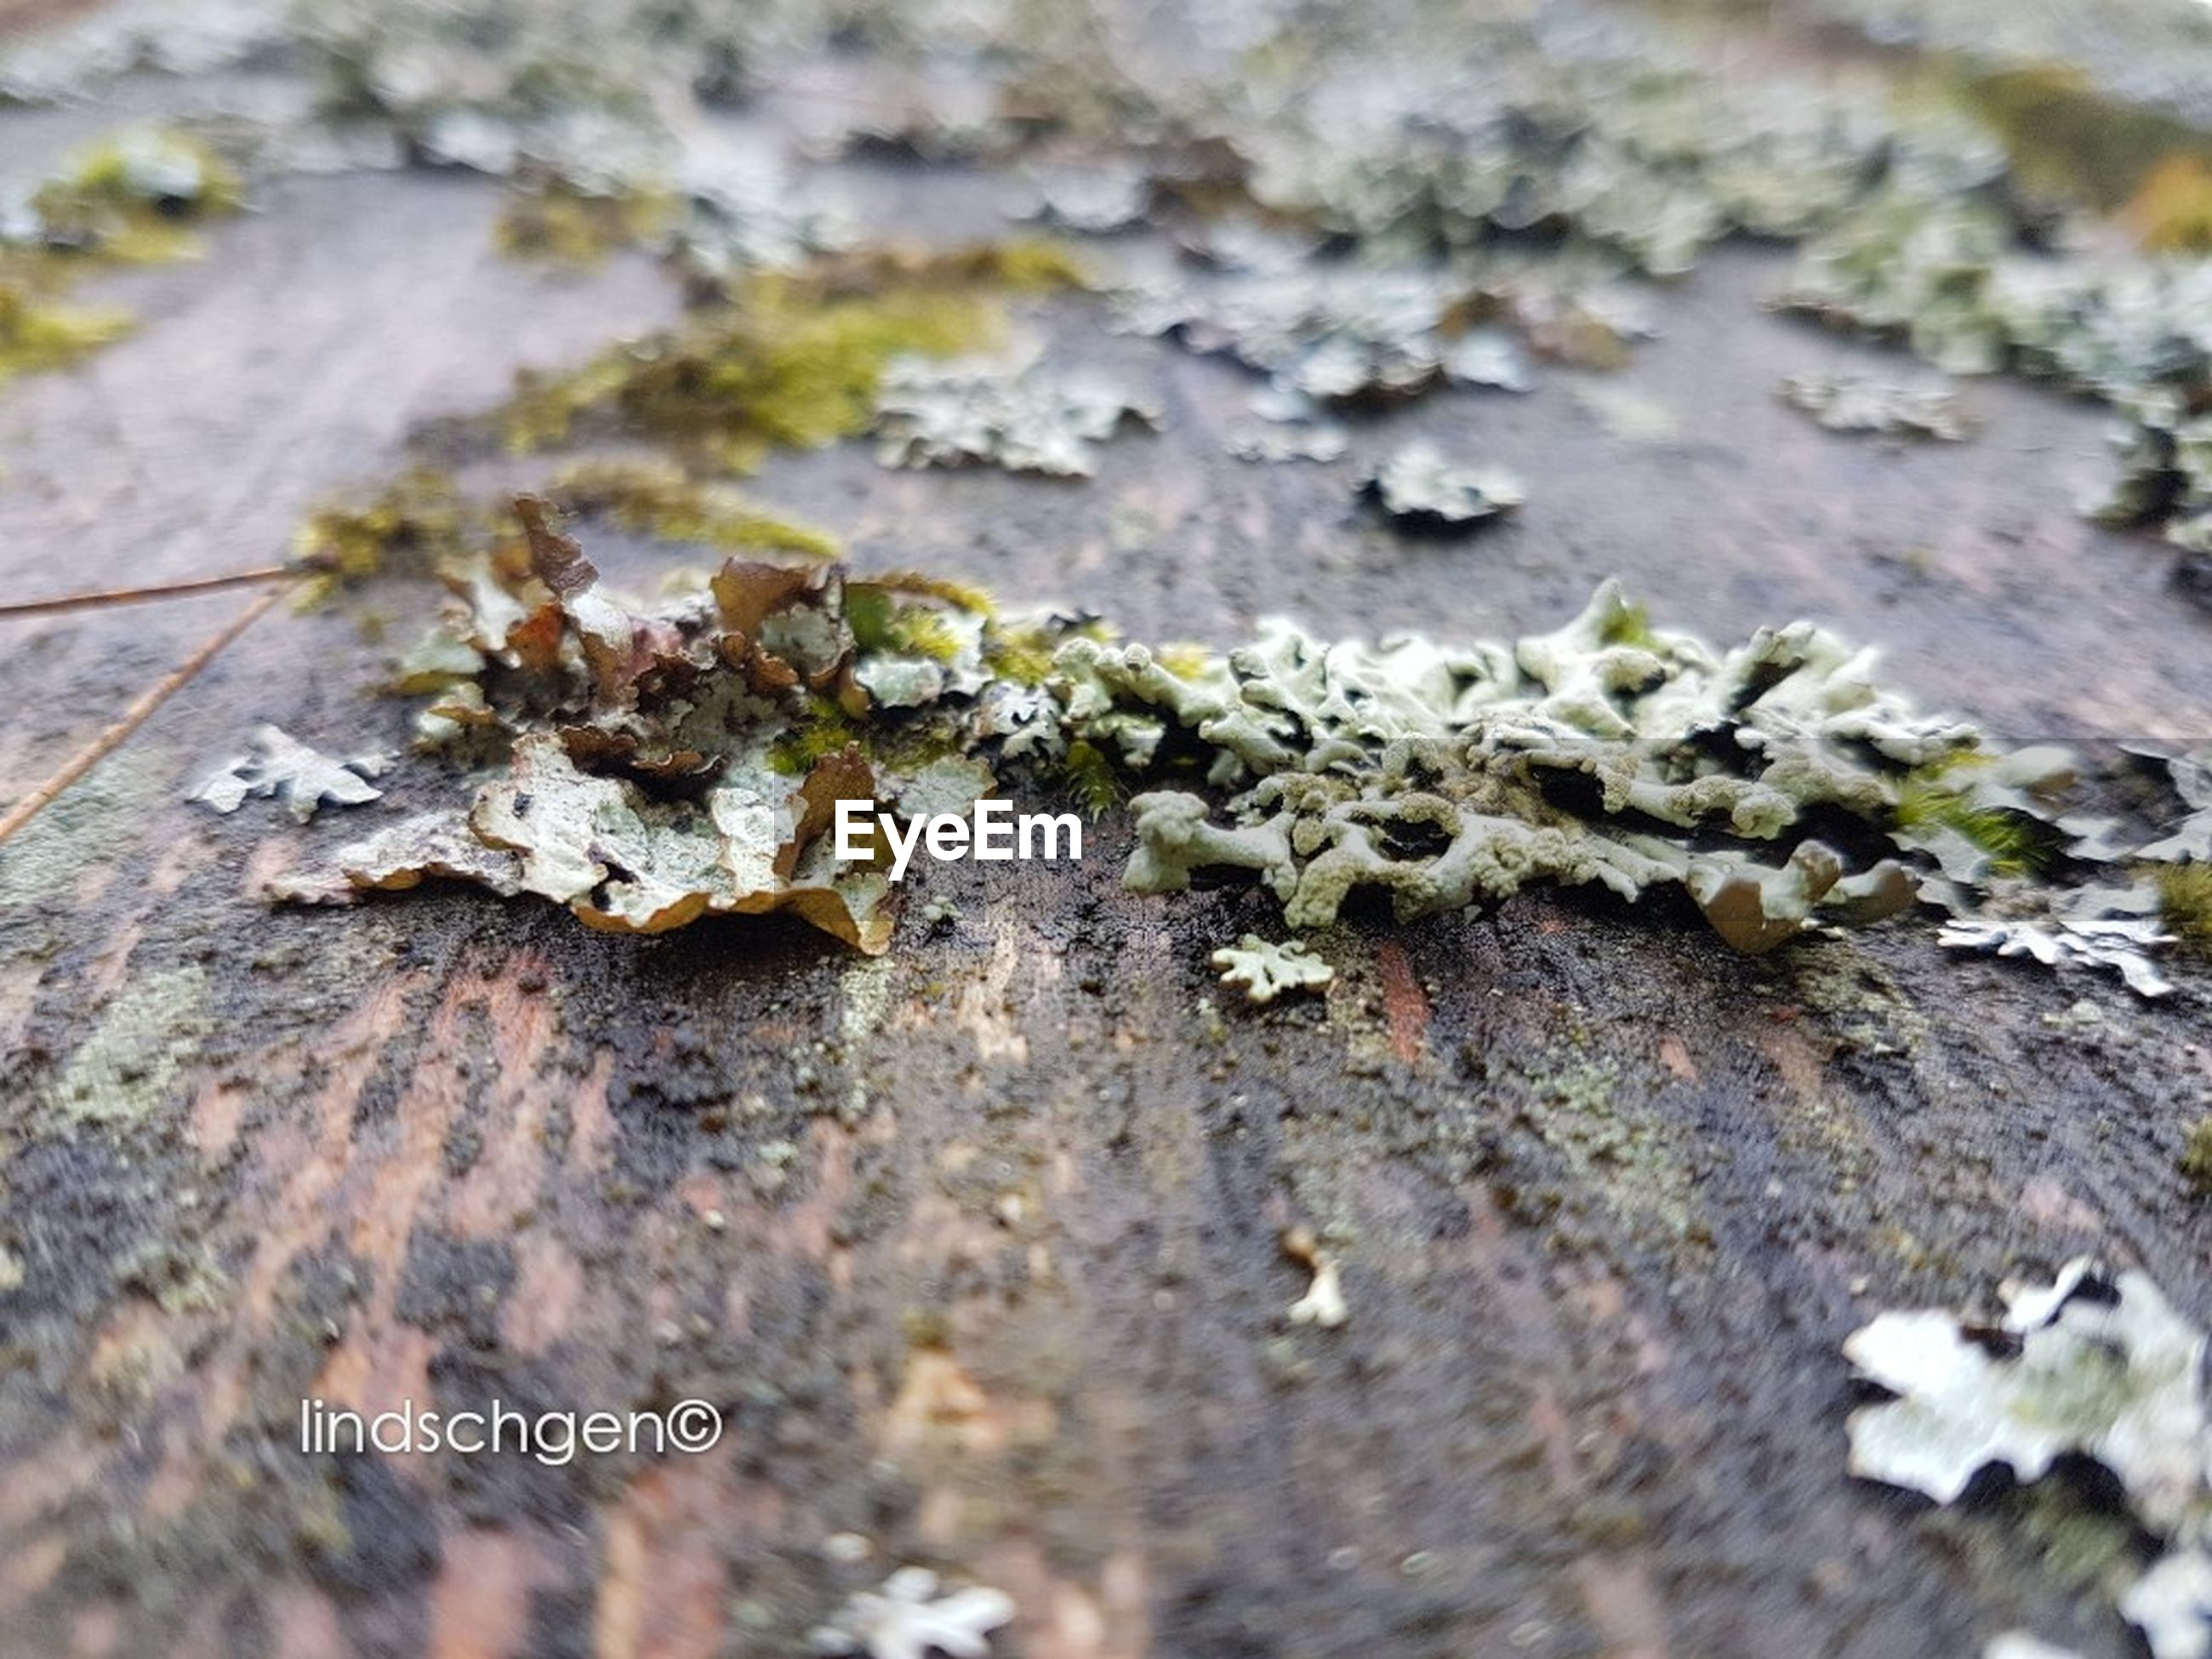 close-up, lichen, fungus, nature, no people, outdoors, textured, day, fragility